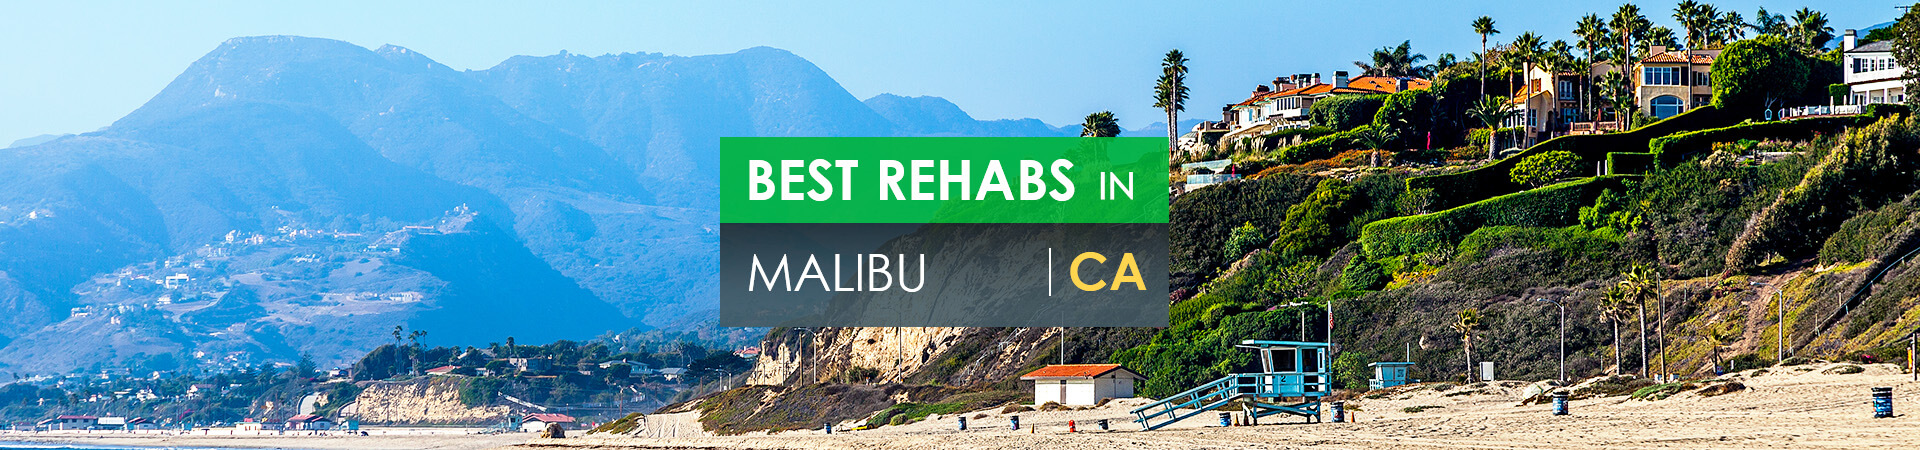 Best rehabs in Malibu, CA